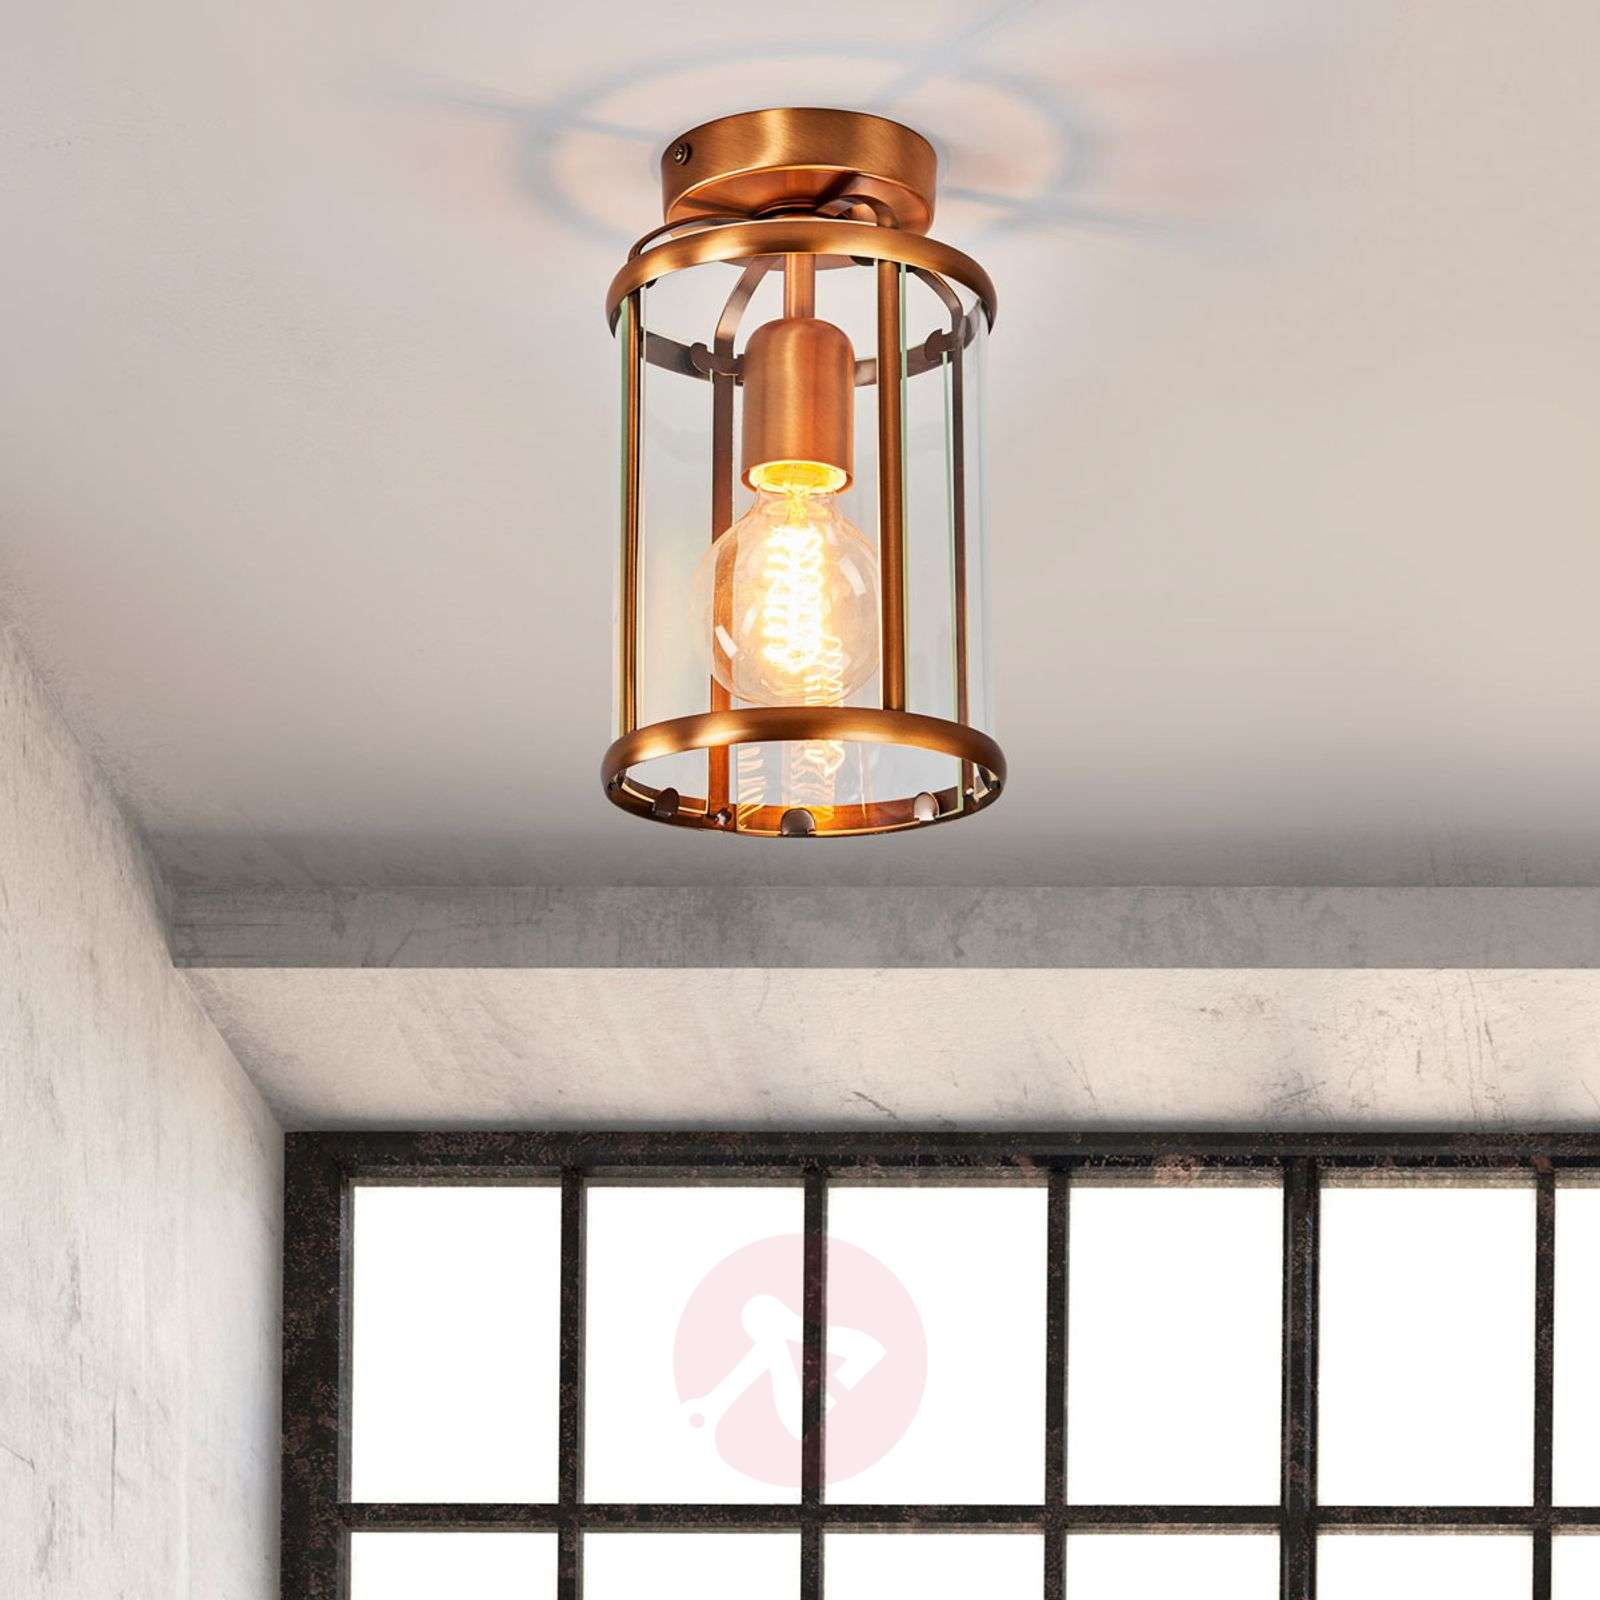 Appealing Pimpernel ceiling light-8509463-01